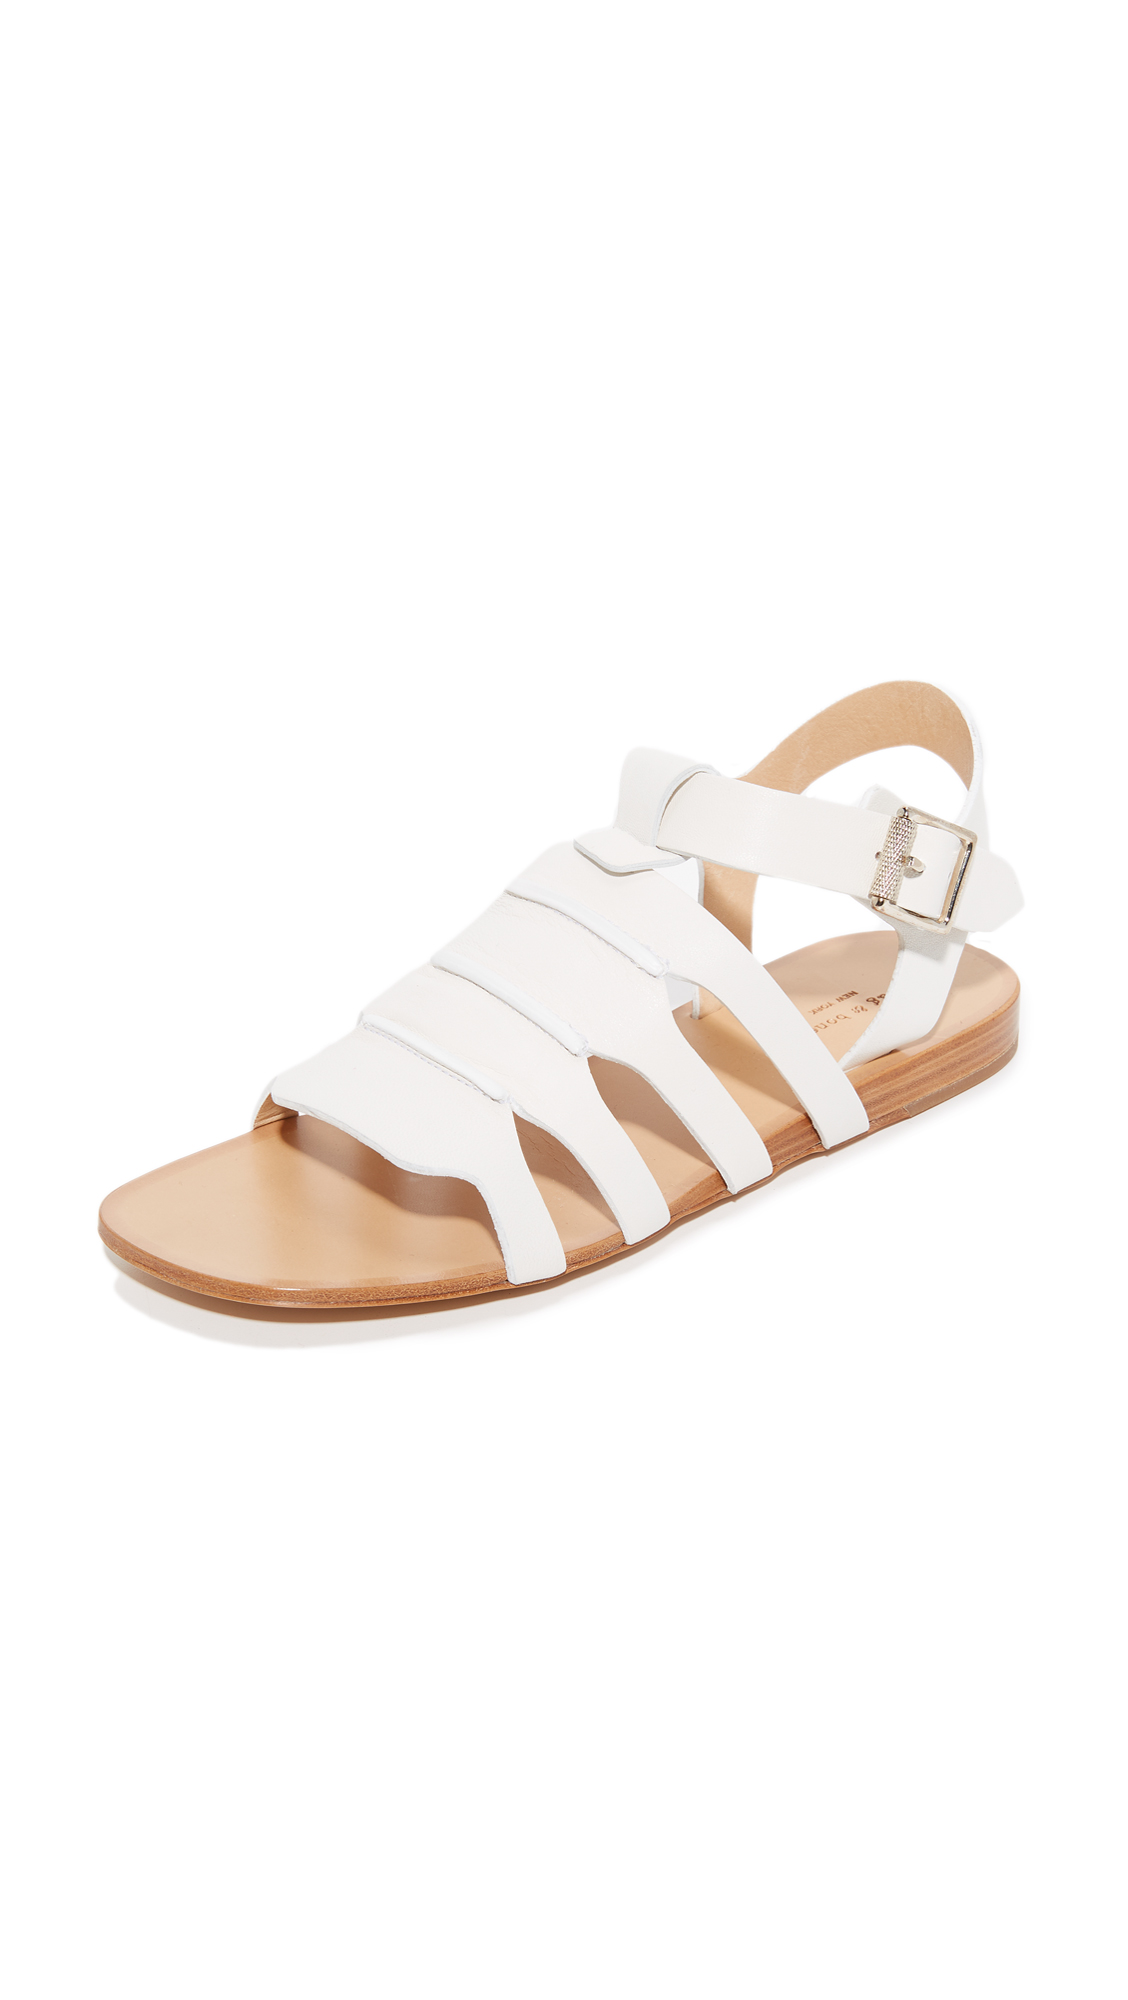 Rag & Bone Karli Sandals - White